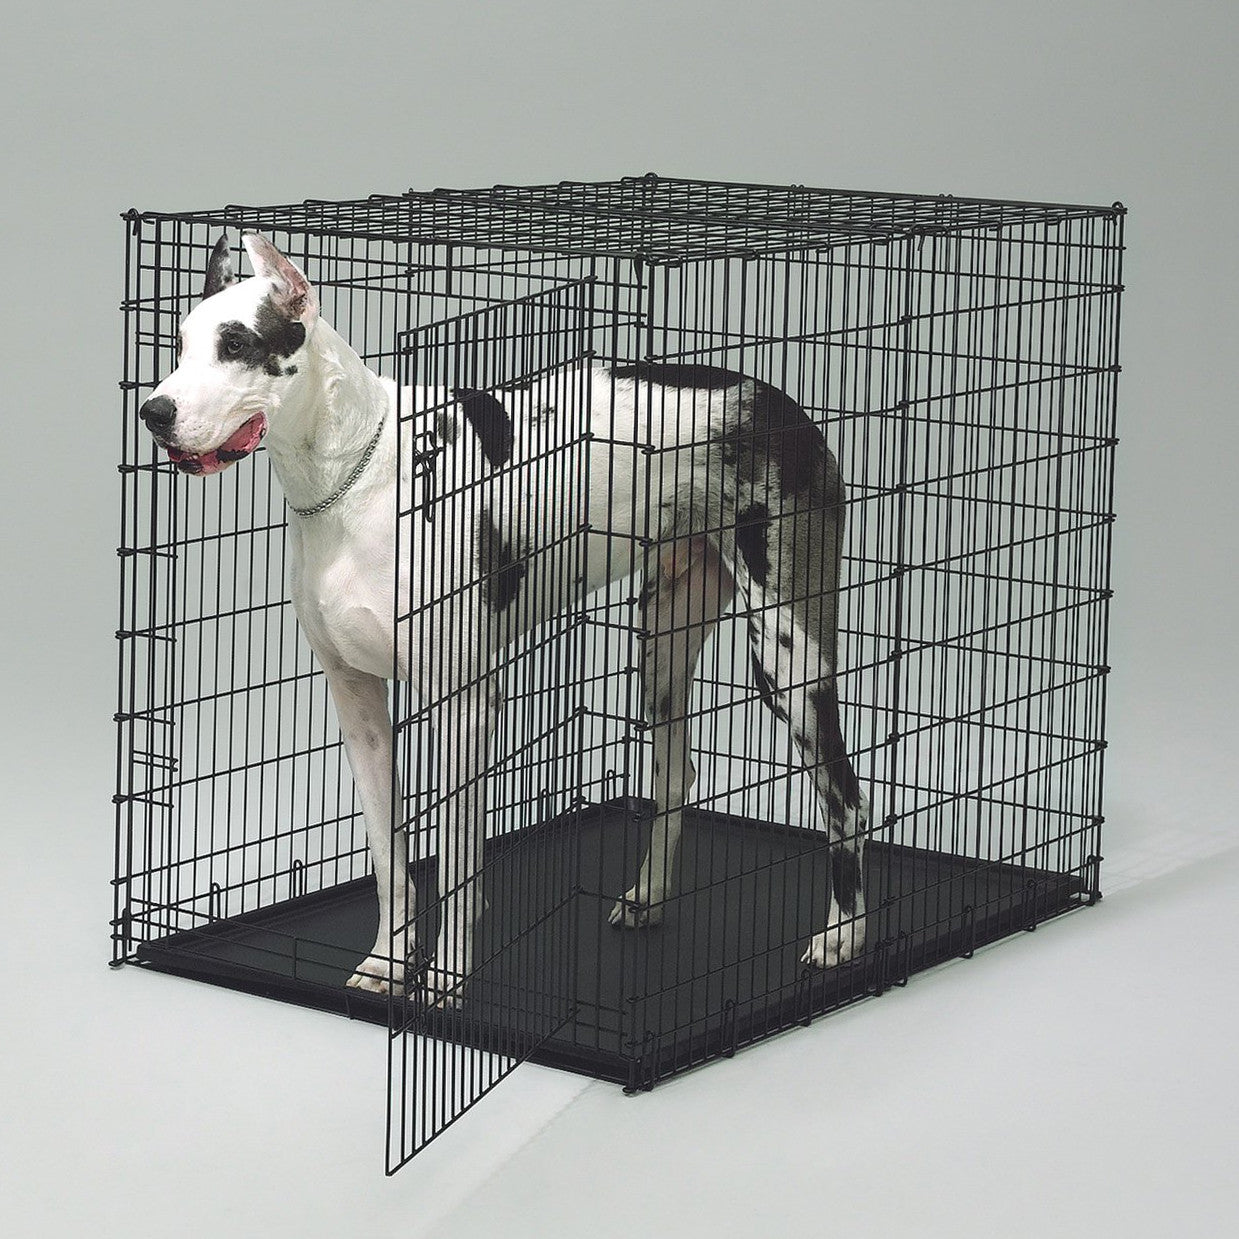 Midwest 1154U Extra Large Dog Crate for Big Dogs